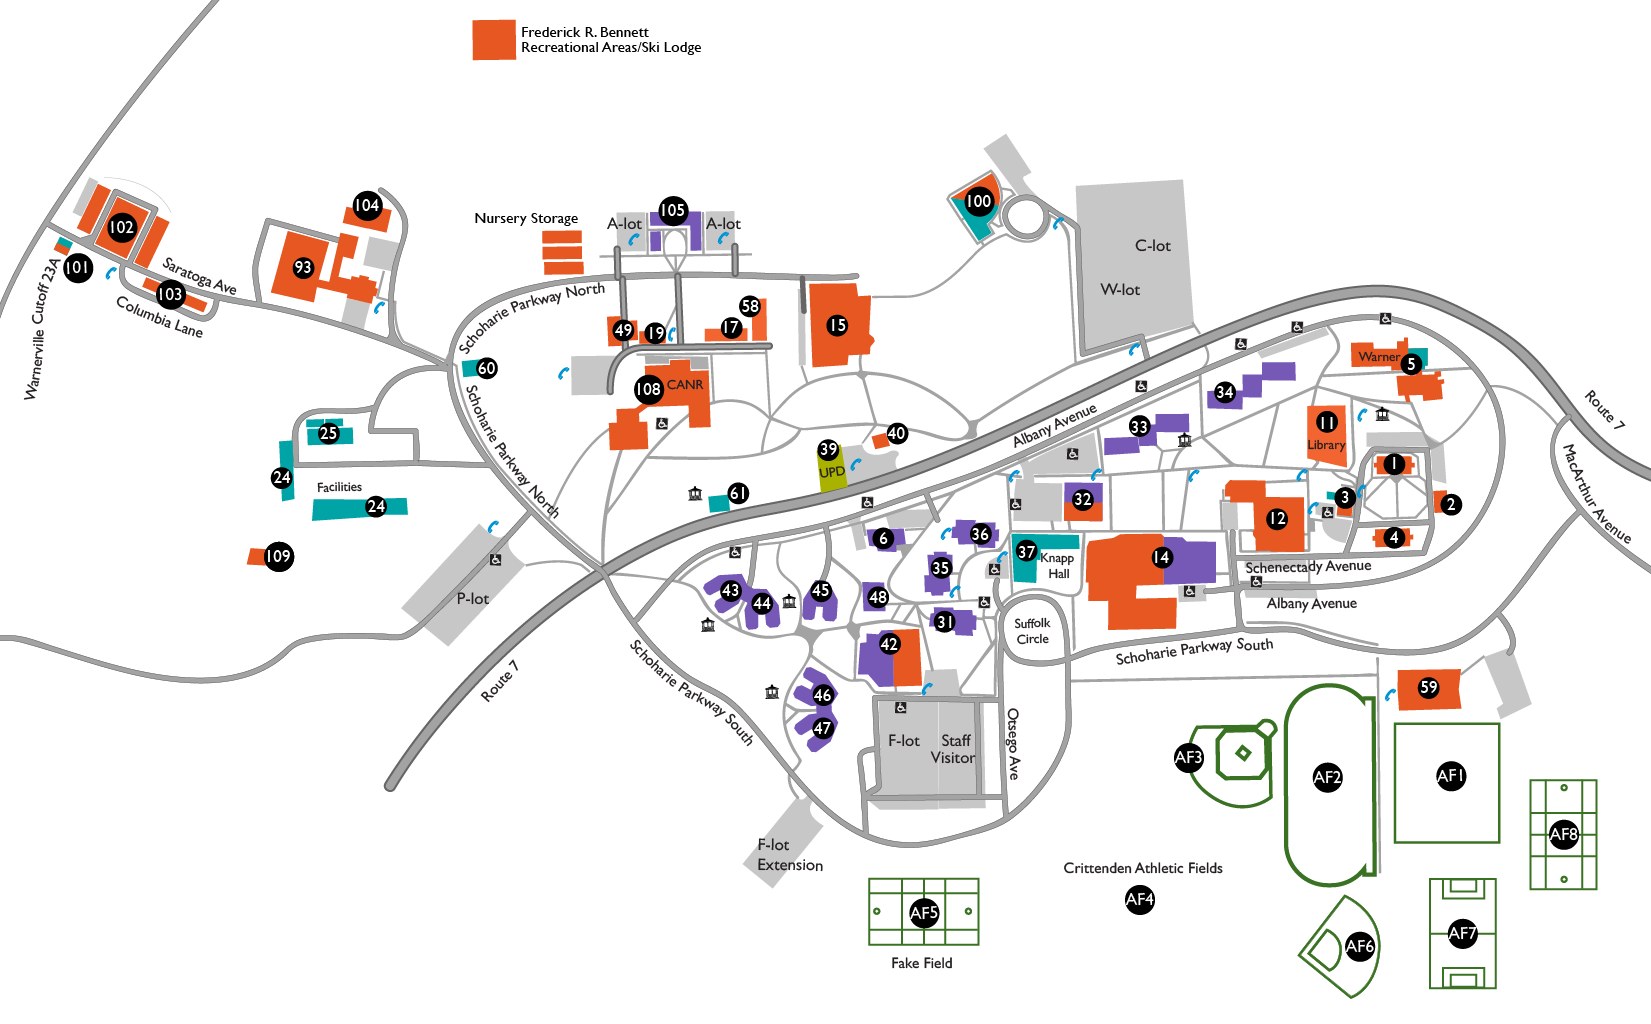 rockland community college campus map Map And Directions rockland community college campus map